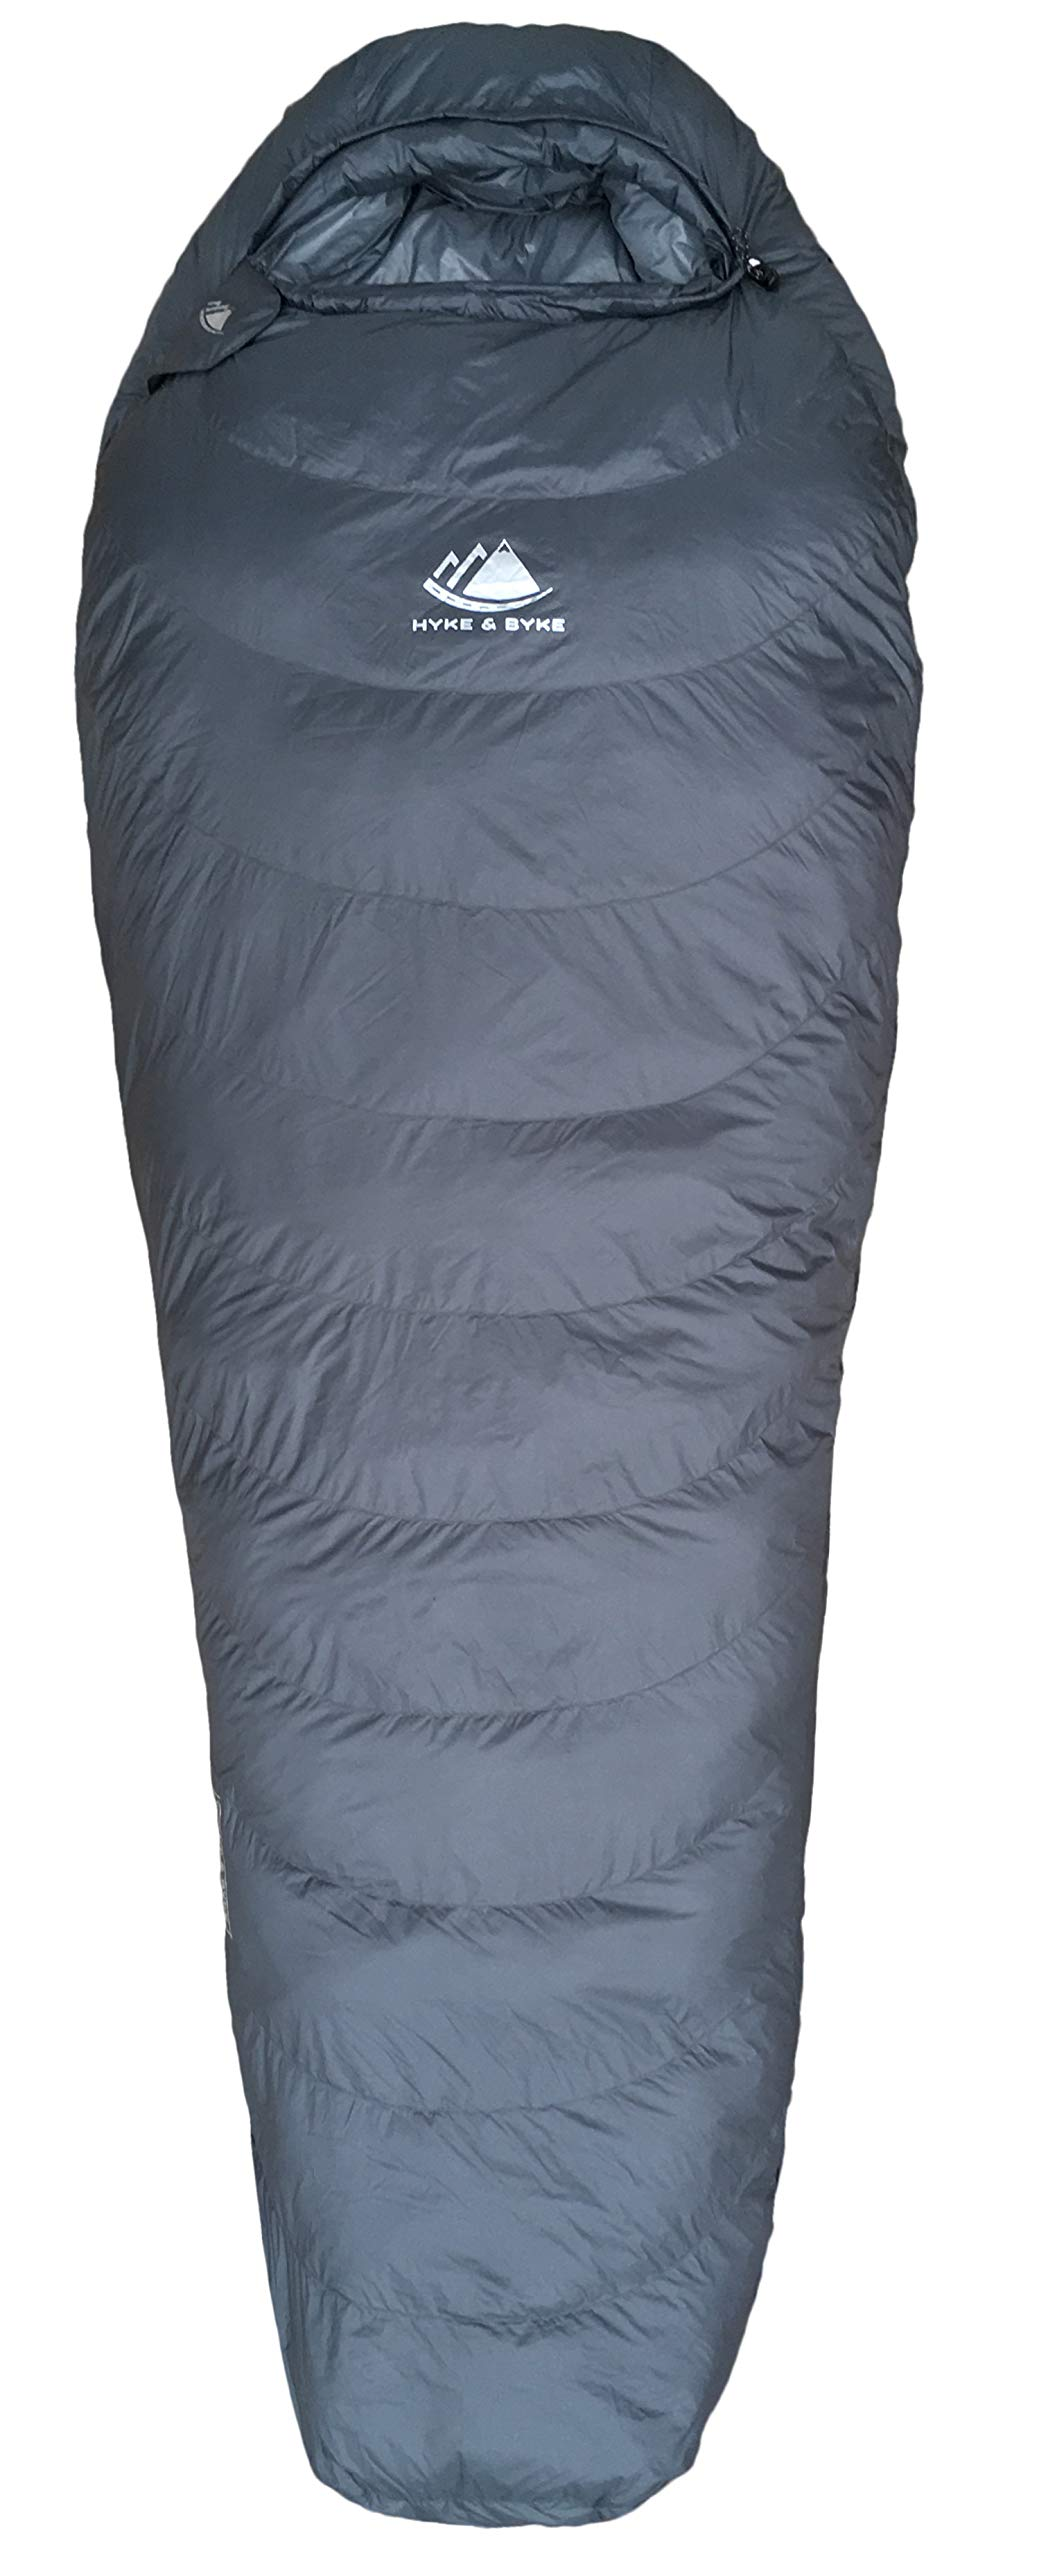 Hyke & Byke 0 Degree F 625 Fill Power Hydrophobic Sleeping Bag with Advanced Synthetic - Ultra Lightweight 4 Season Men's and Women's Mummy Bag Designed for Backpacking 4